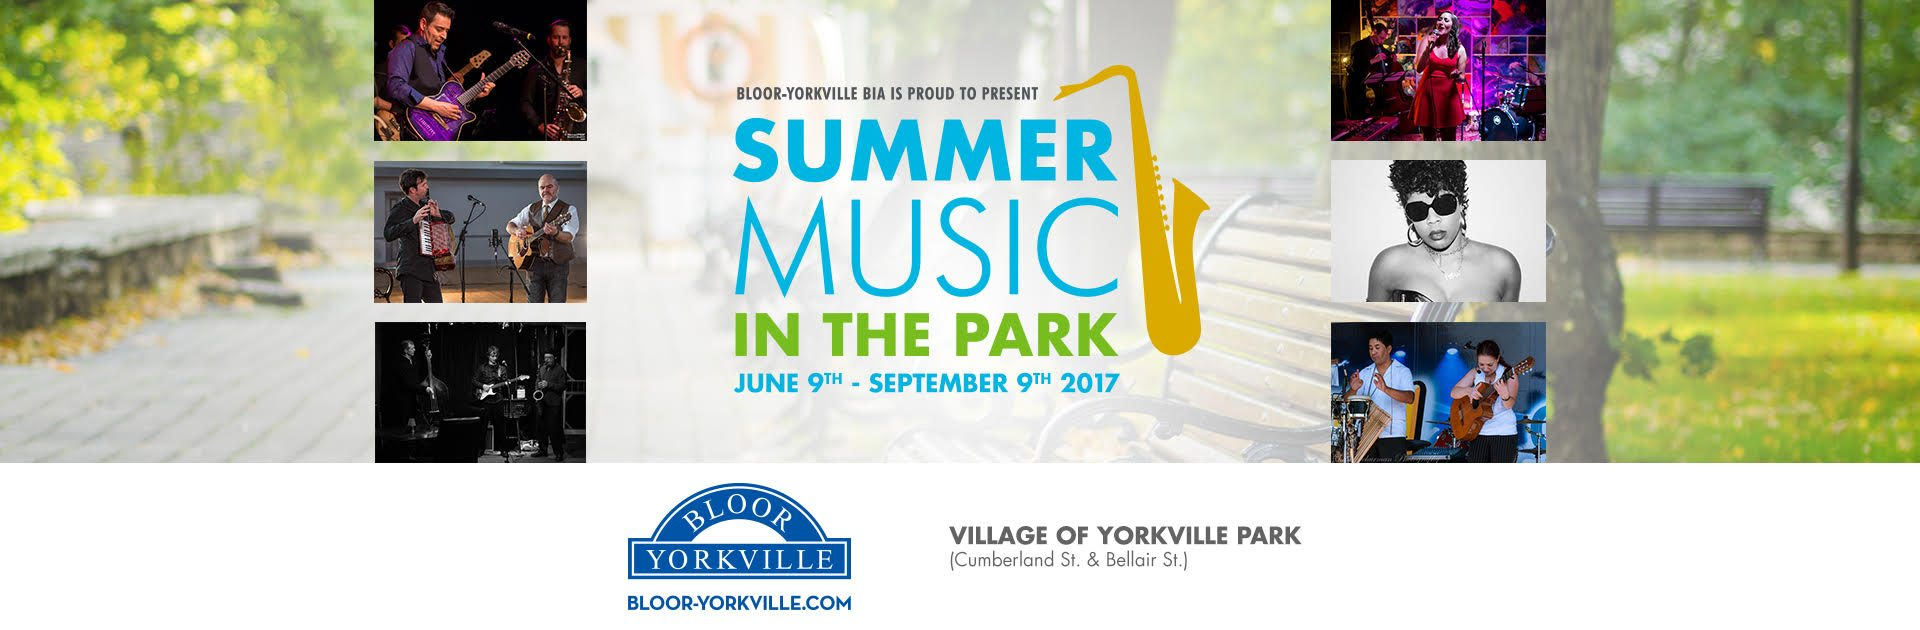 Summer Music in the Park Continues